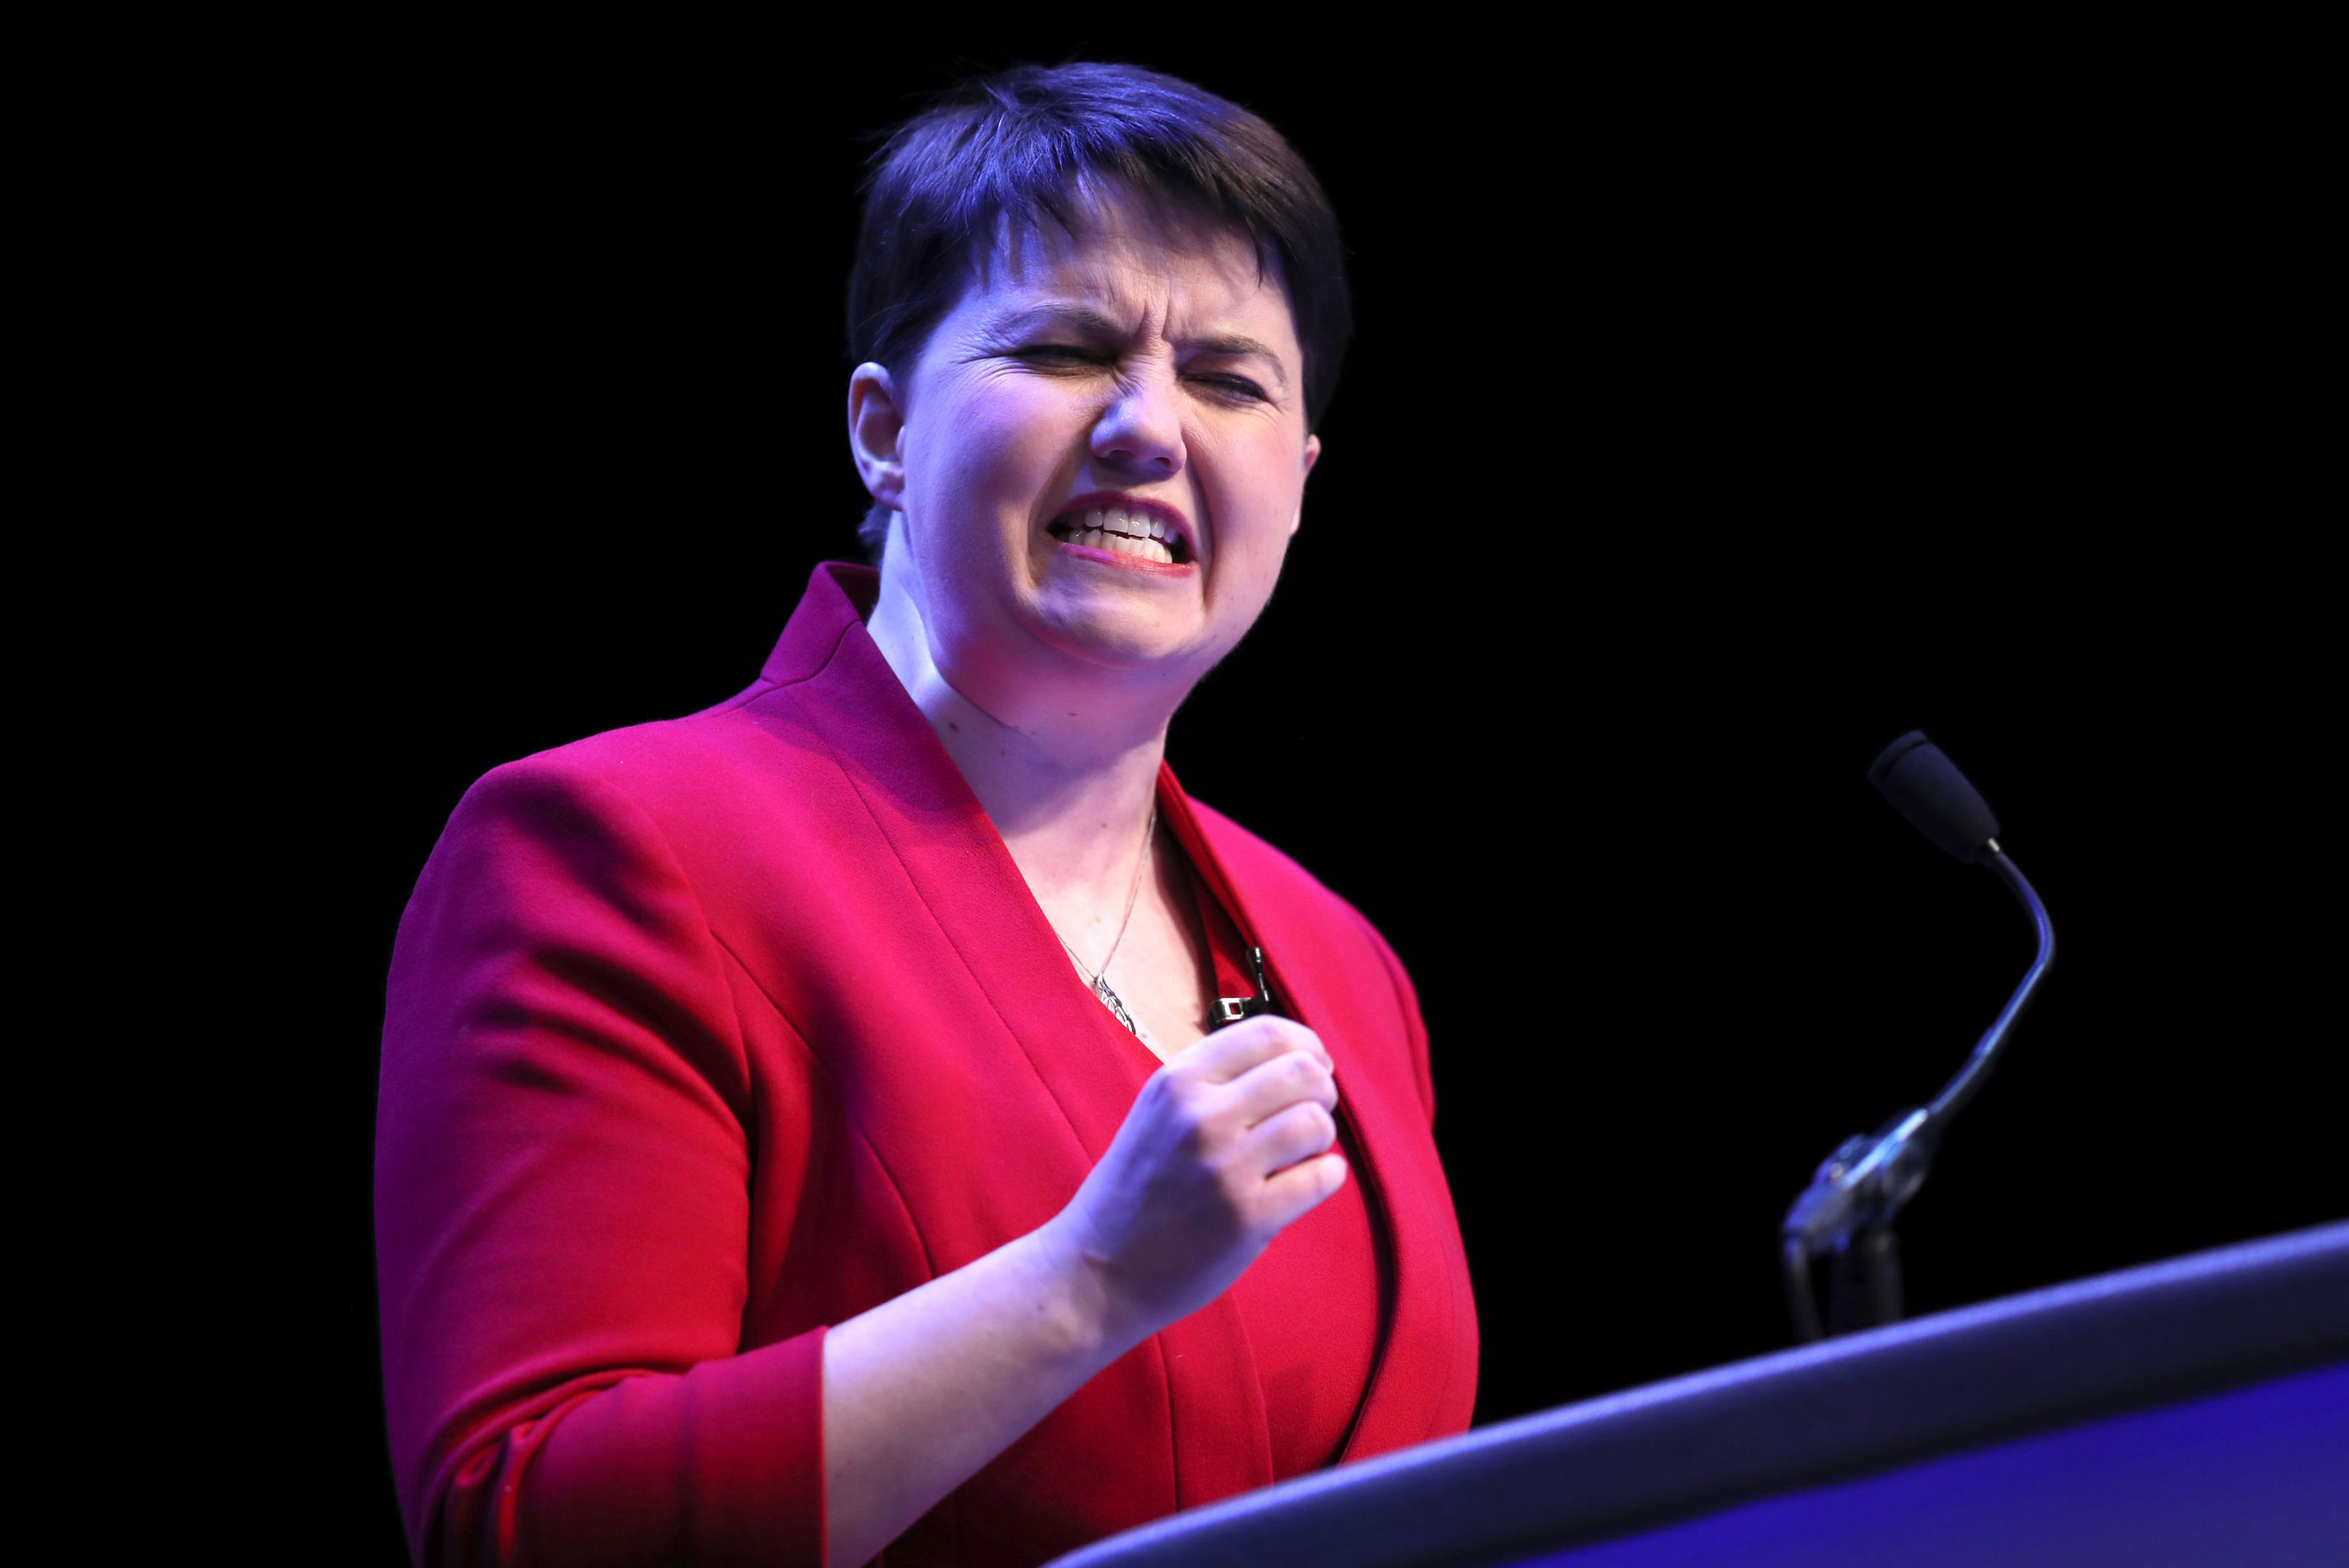 Scottish Conservative leader Ruth Davidson delivers her keynote speech at the annual Scottish Conservative conference at the Scottish Exhibition and Conference Centre in Glasgow. (Jane Barlow/PA Wire)